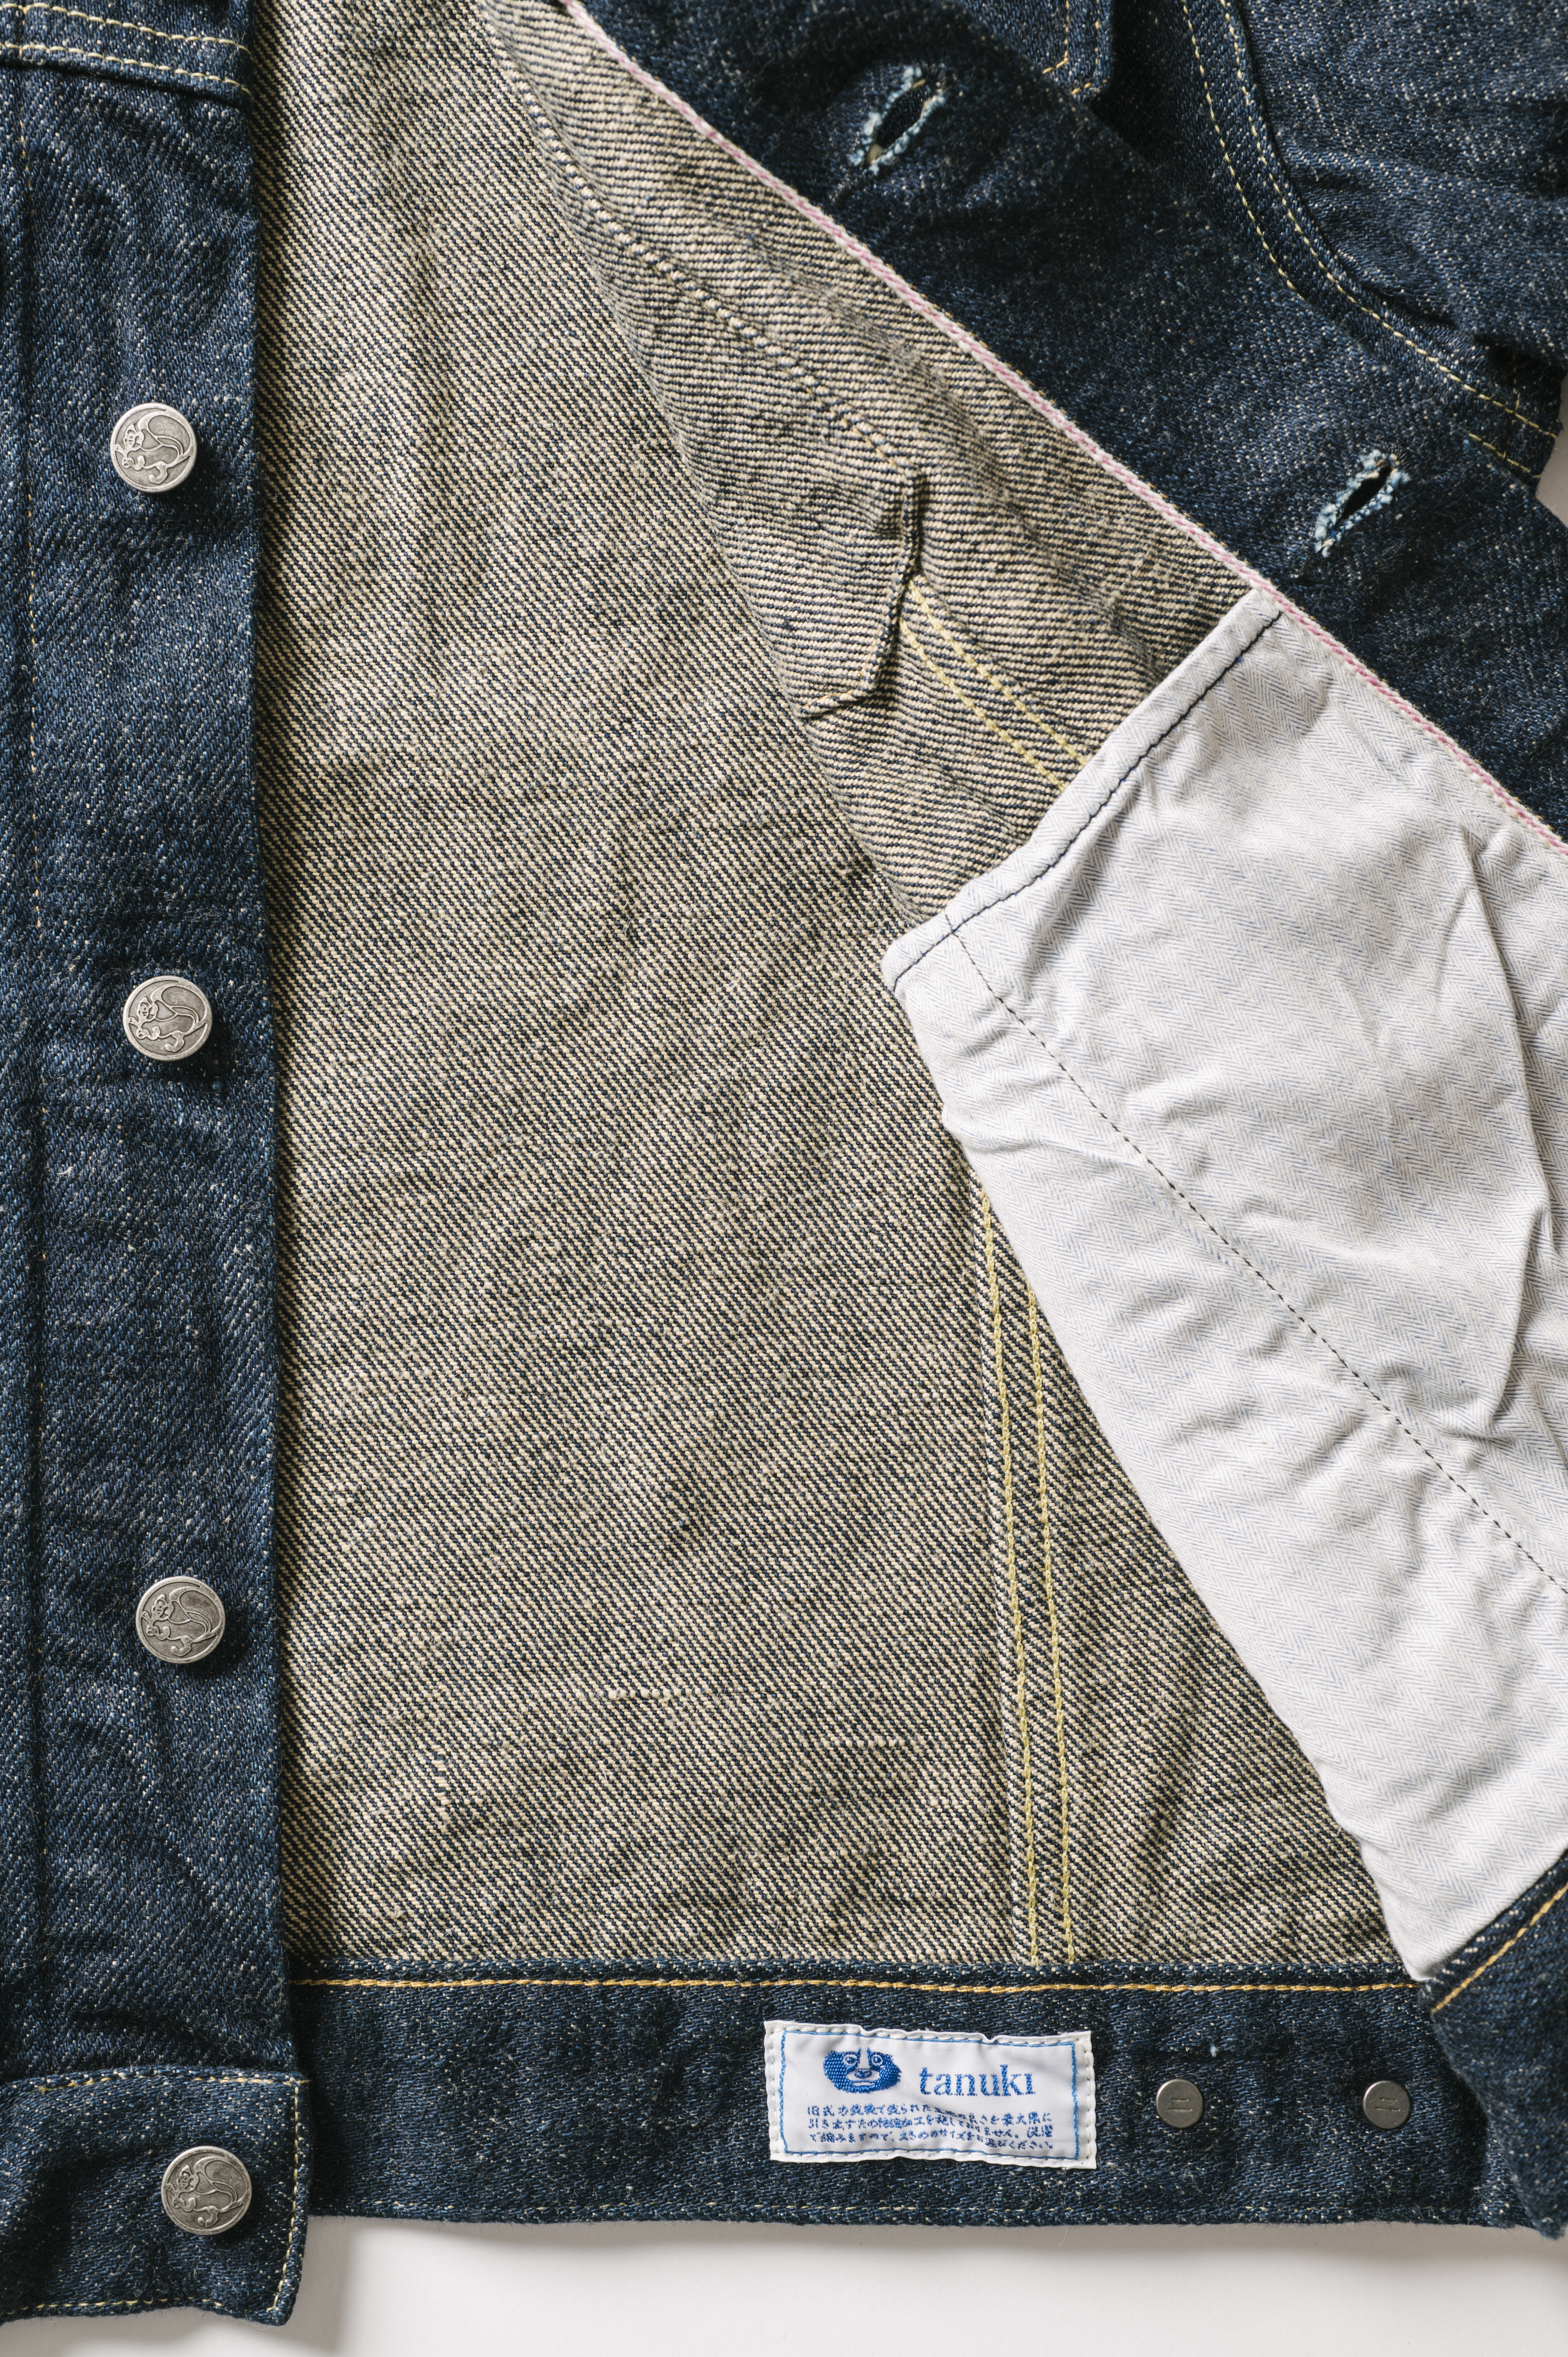 OTJKT3 ONI x TANUKI Collaboration 21.5oz Secret Denim Signature 3rd Jacket with handwarmers,, large image number 2